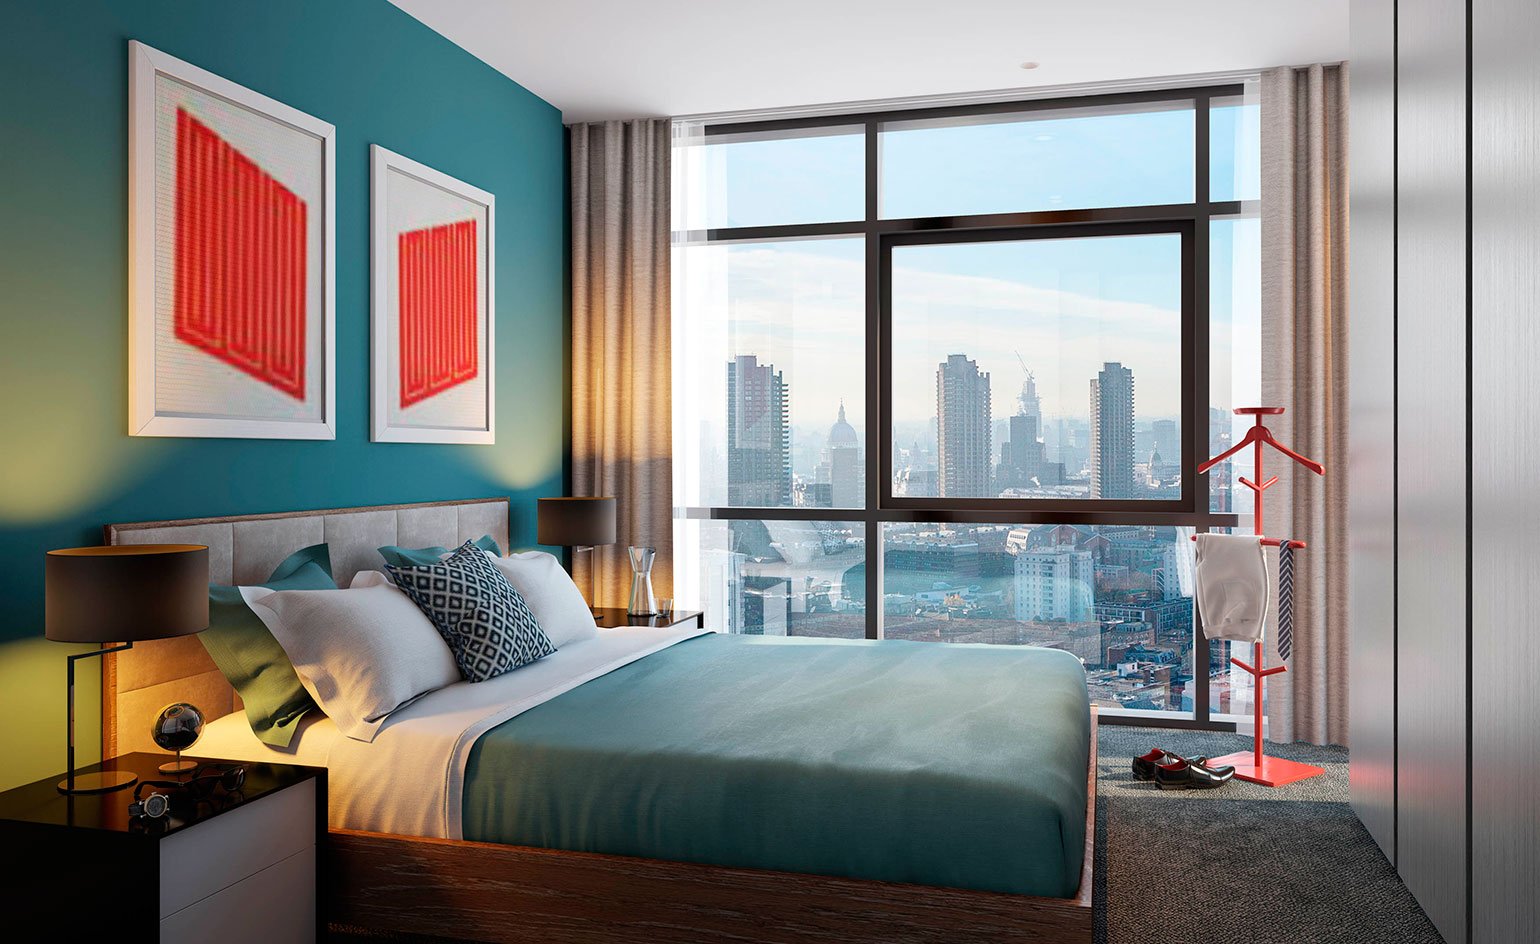 The Residences On Offer Include Studios One To Three Bedroom Apartments And Penthouses Image Courtesy Of Woods Bagot